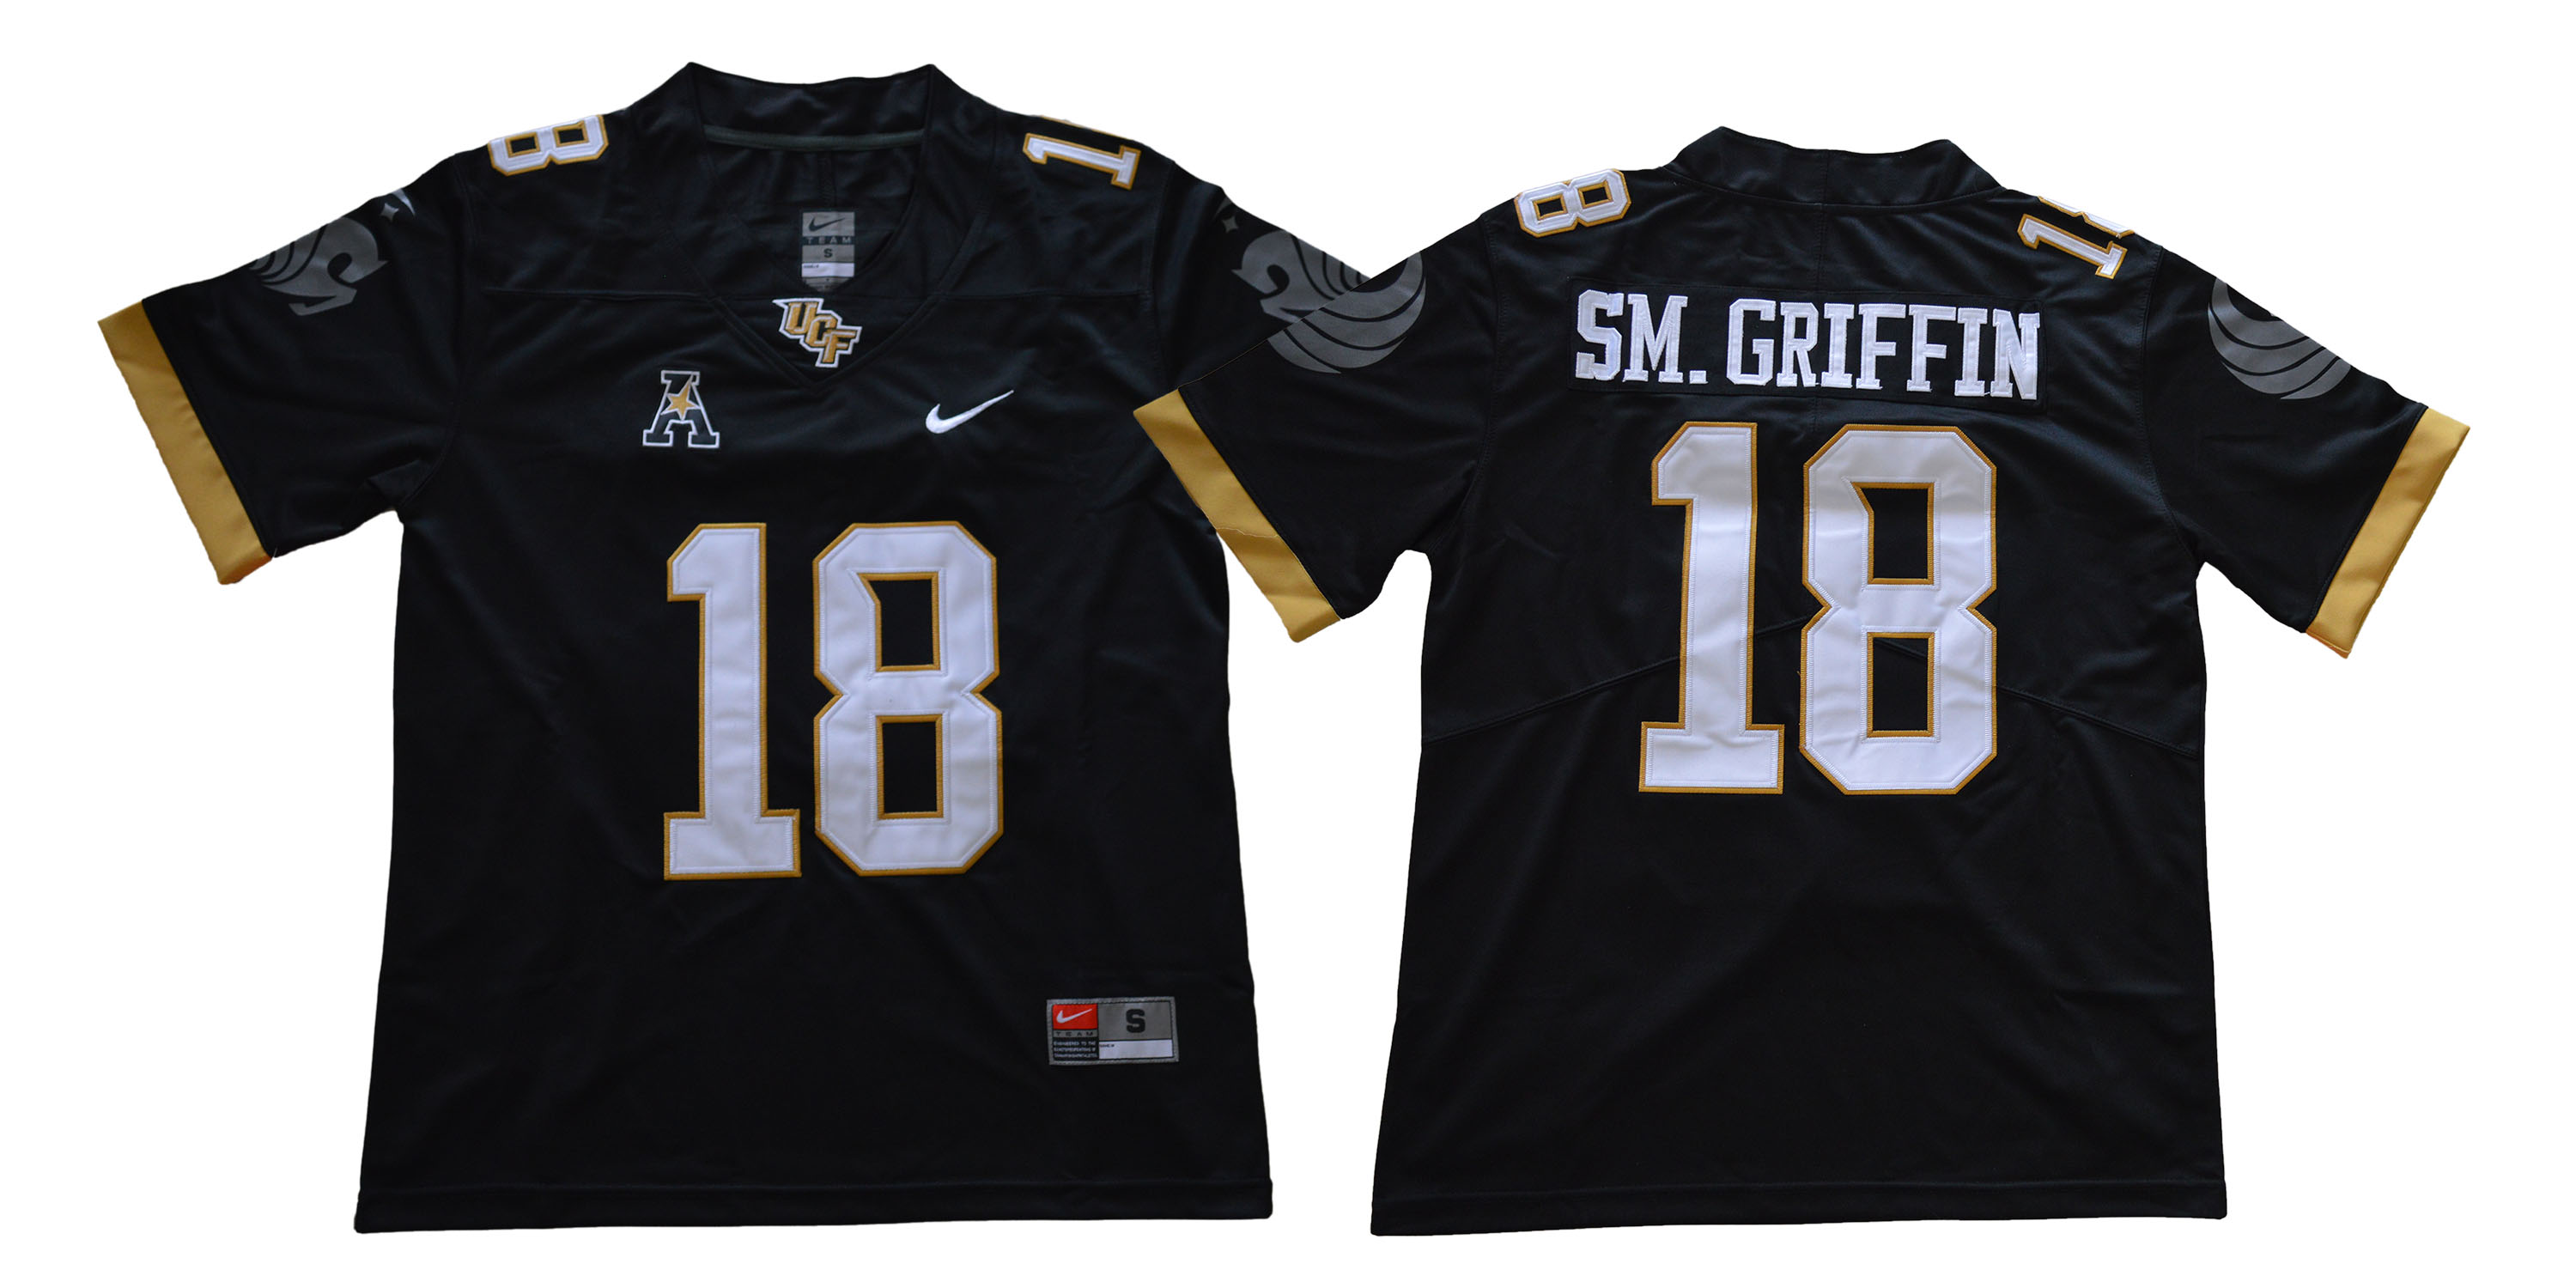 UCF Knights 18 Shaquem Griffin Black College Football Jersey